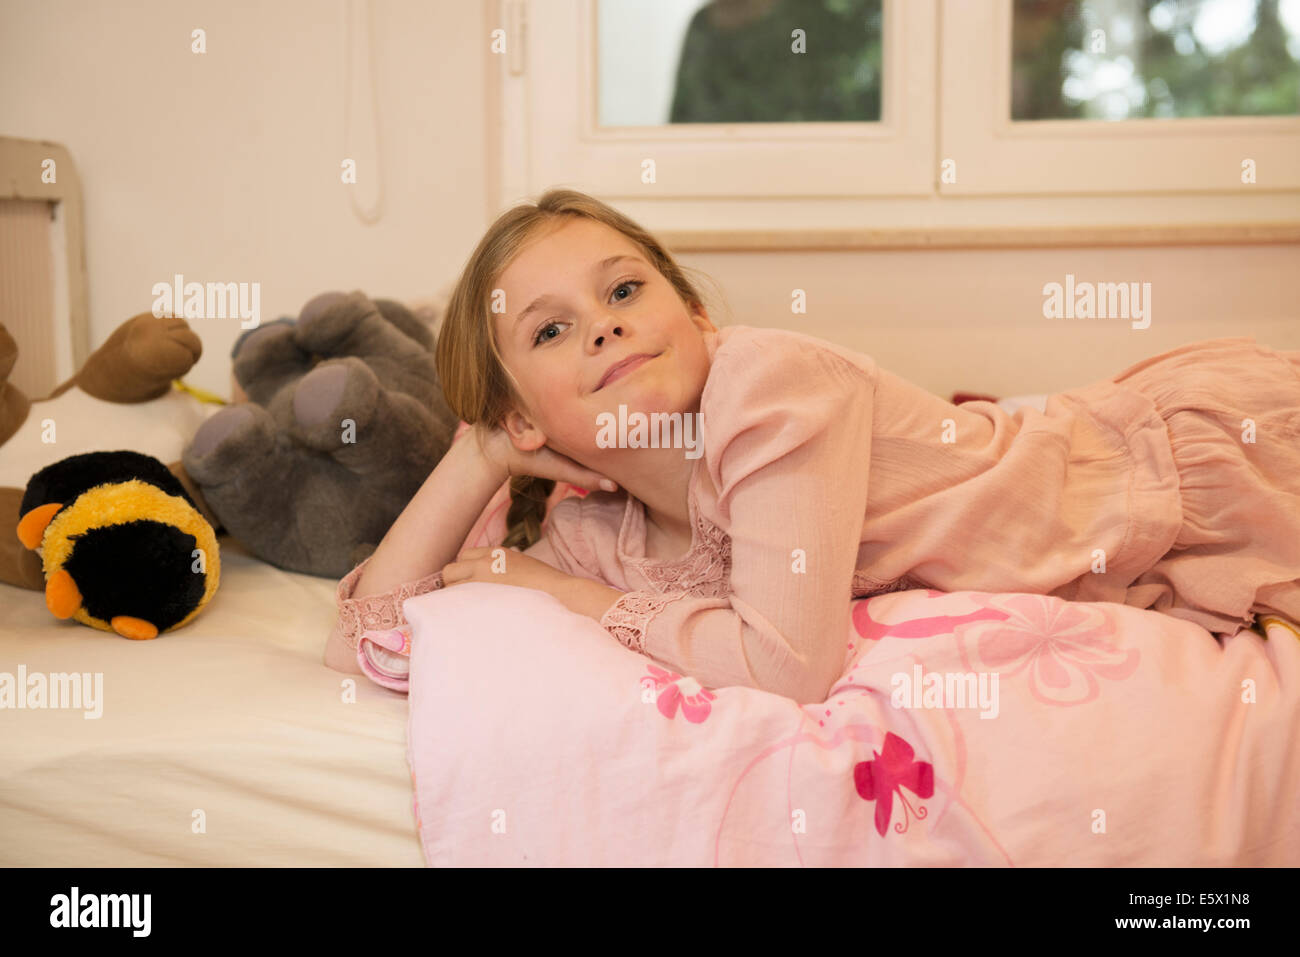 Portrait of mischievous girl lying on bed - Stock Image